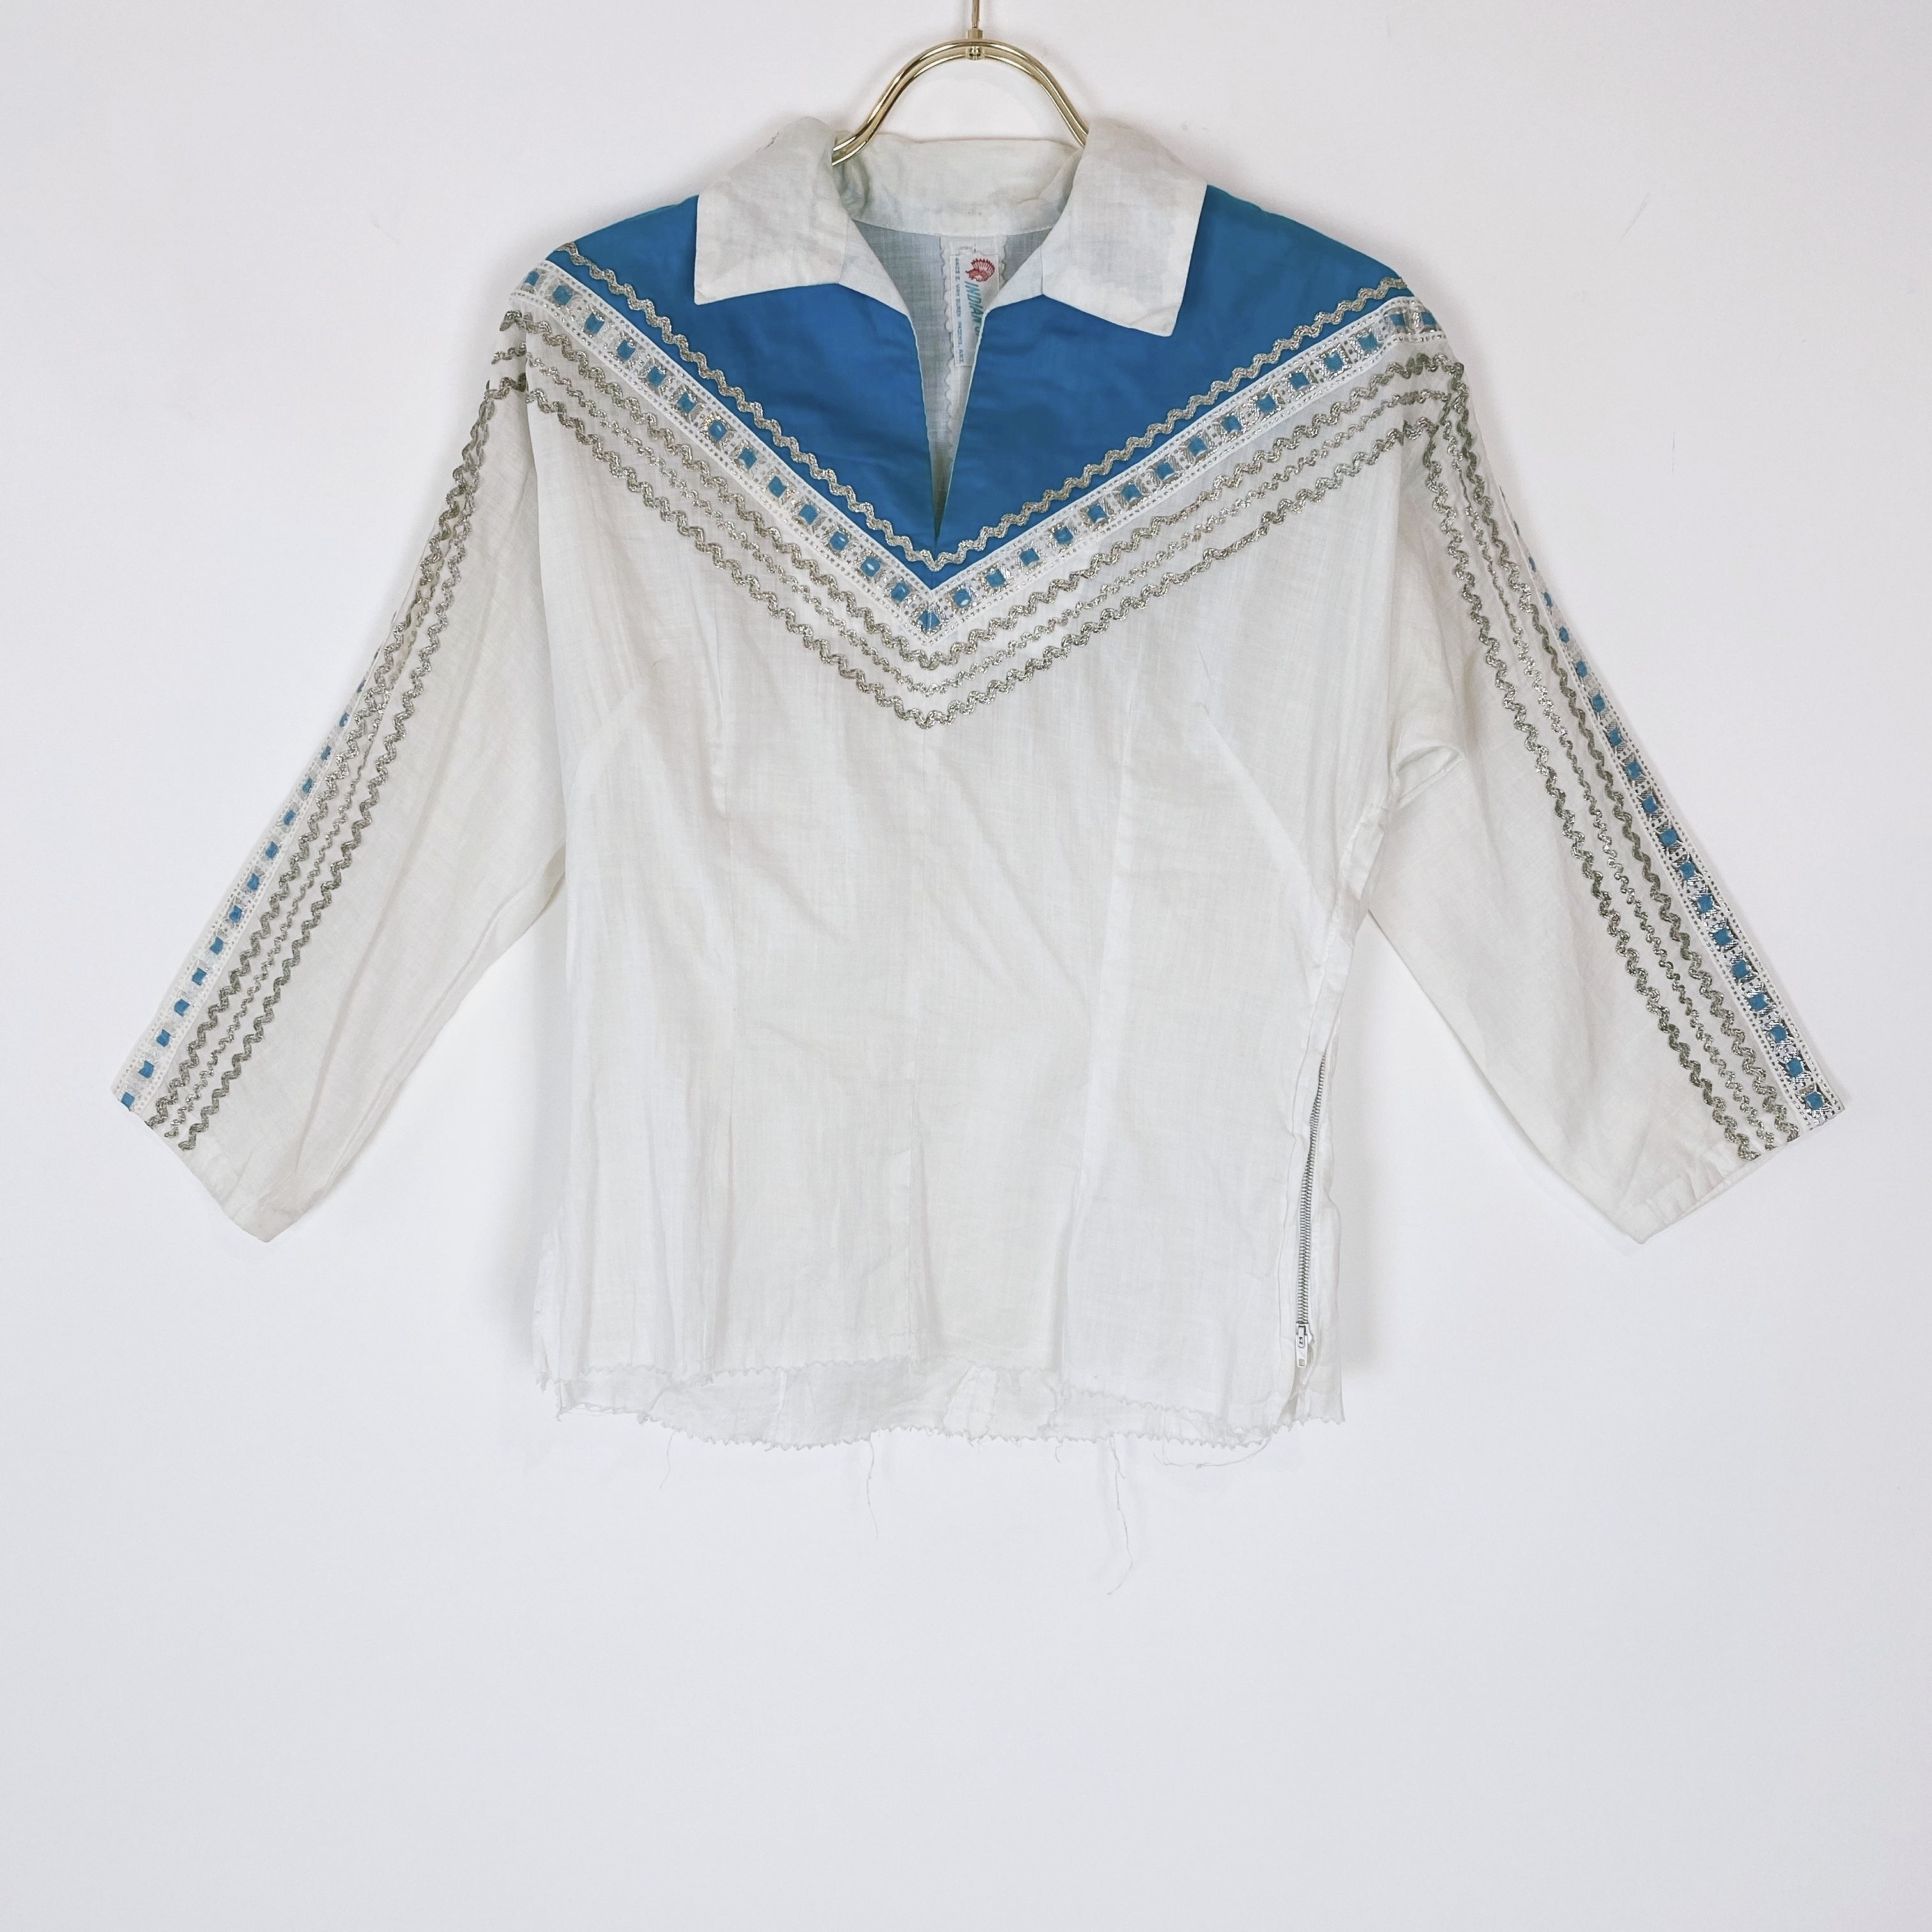 """◼︎50s vintage """"Indian store"""" blouse from U.S.A.◼︎"""